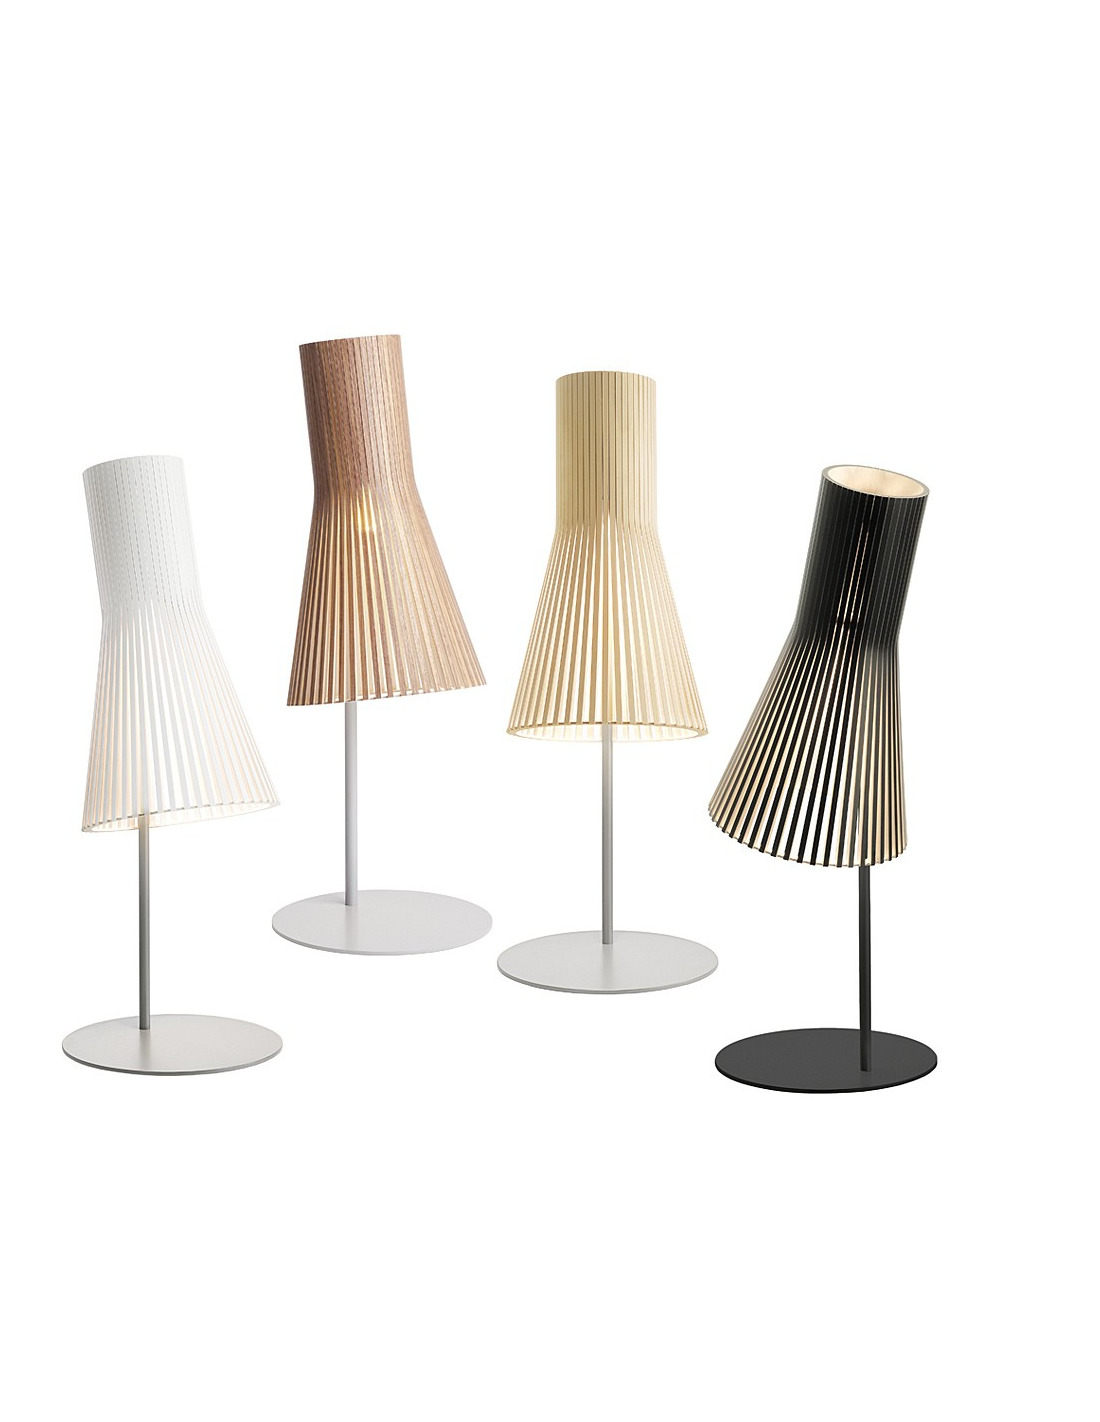 Lampe poser au design scandinave 4220 en bois naturel for Architecture scandinave